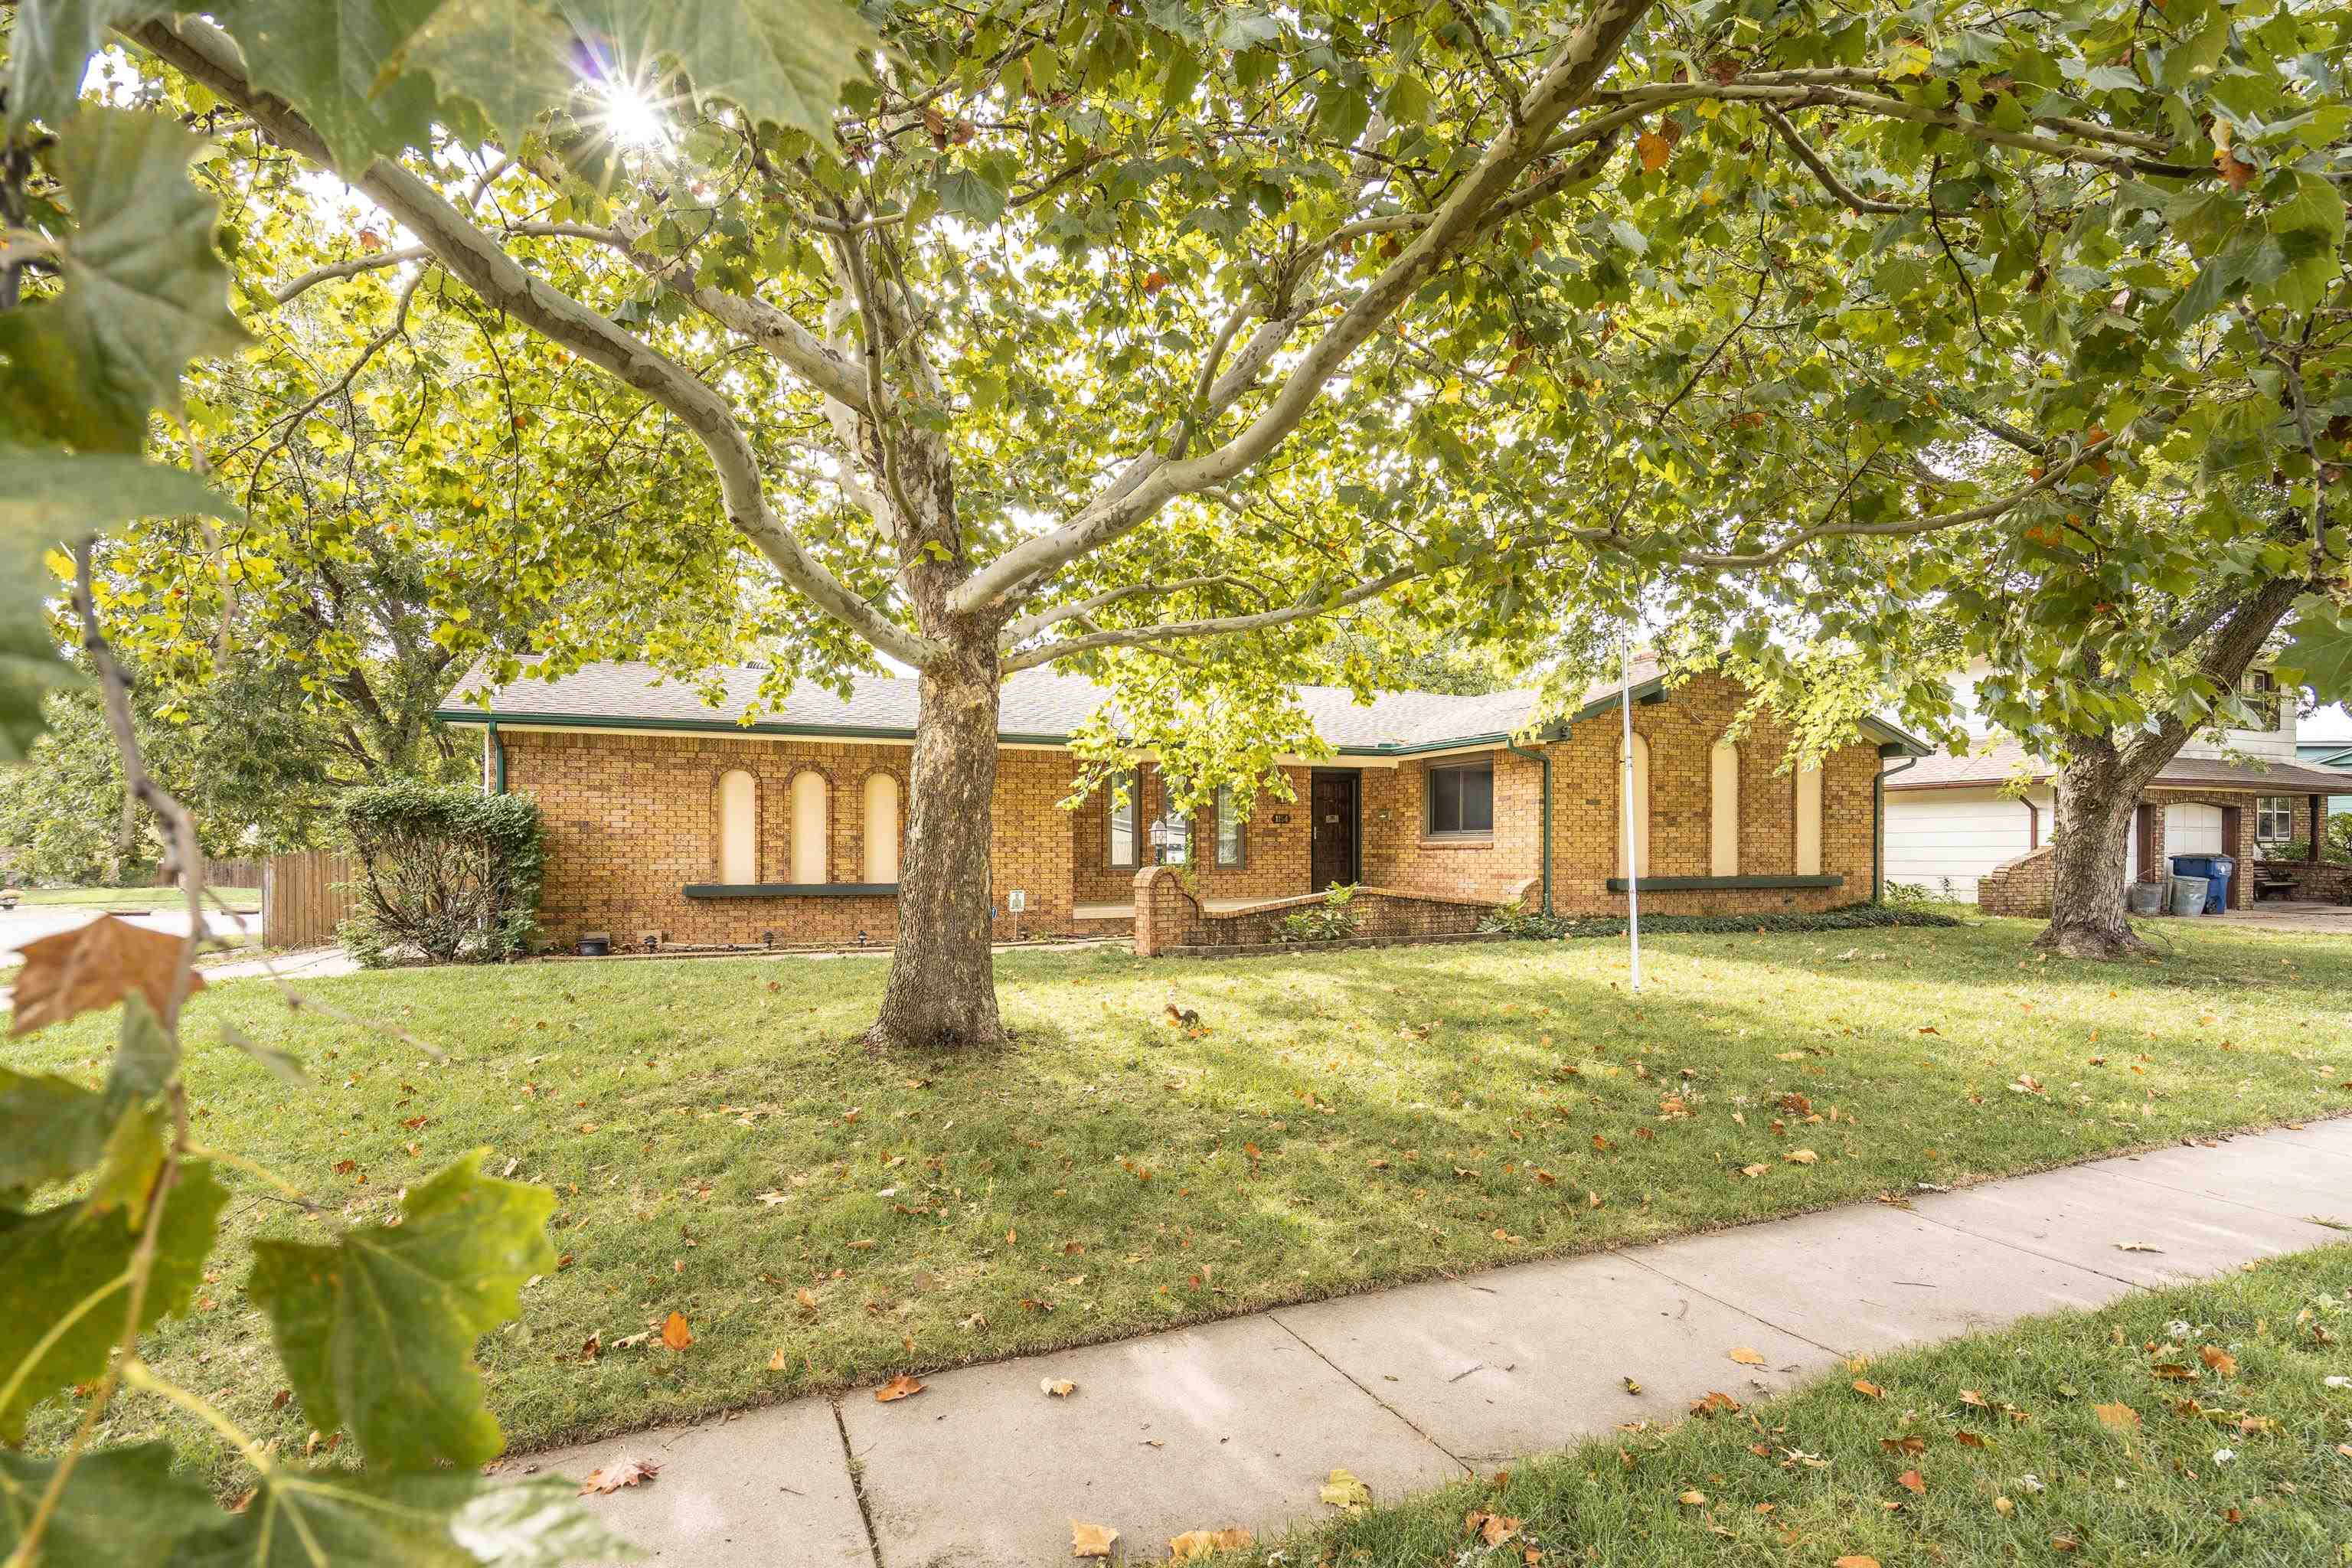 Come see this one-owner home located in an established neighborhood in East Wichita. This 3 bedroom,